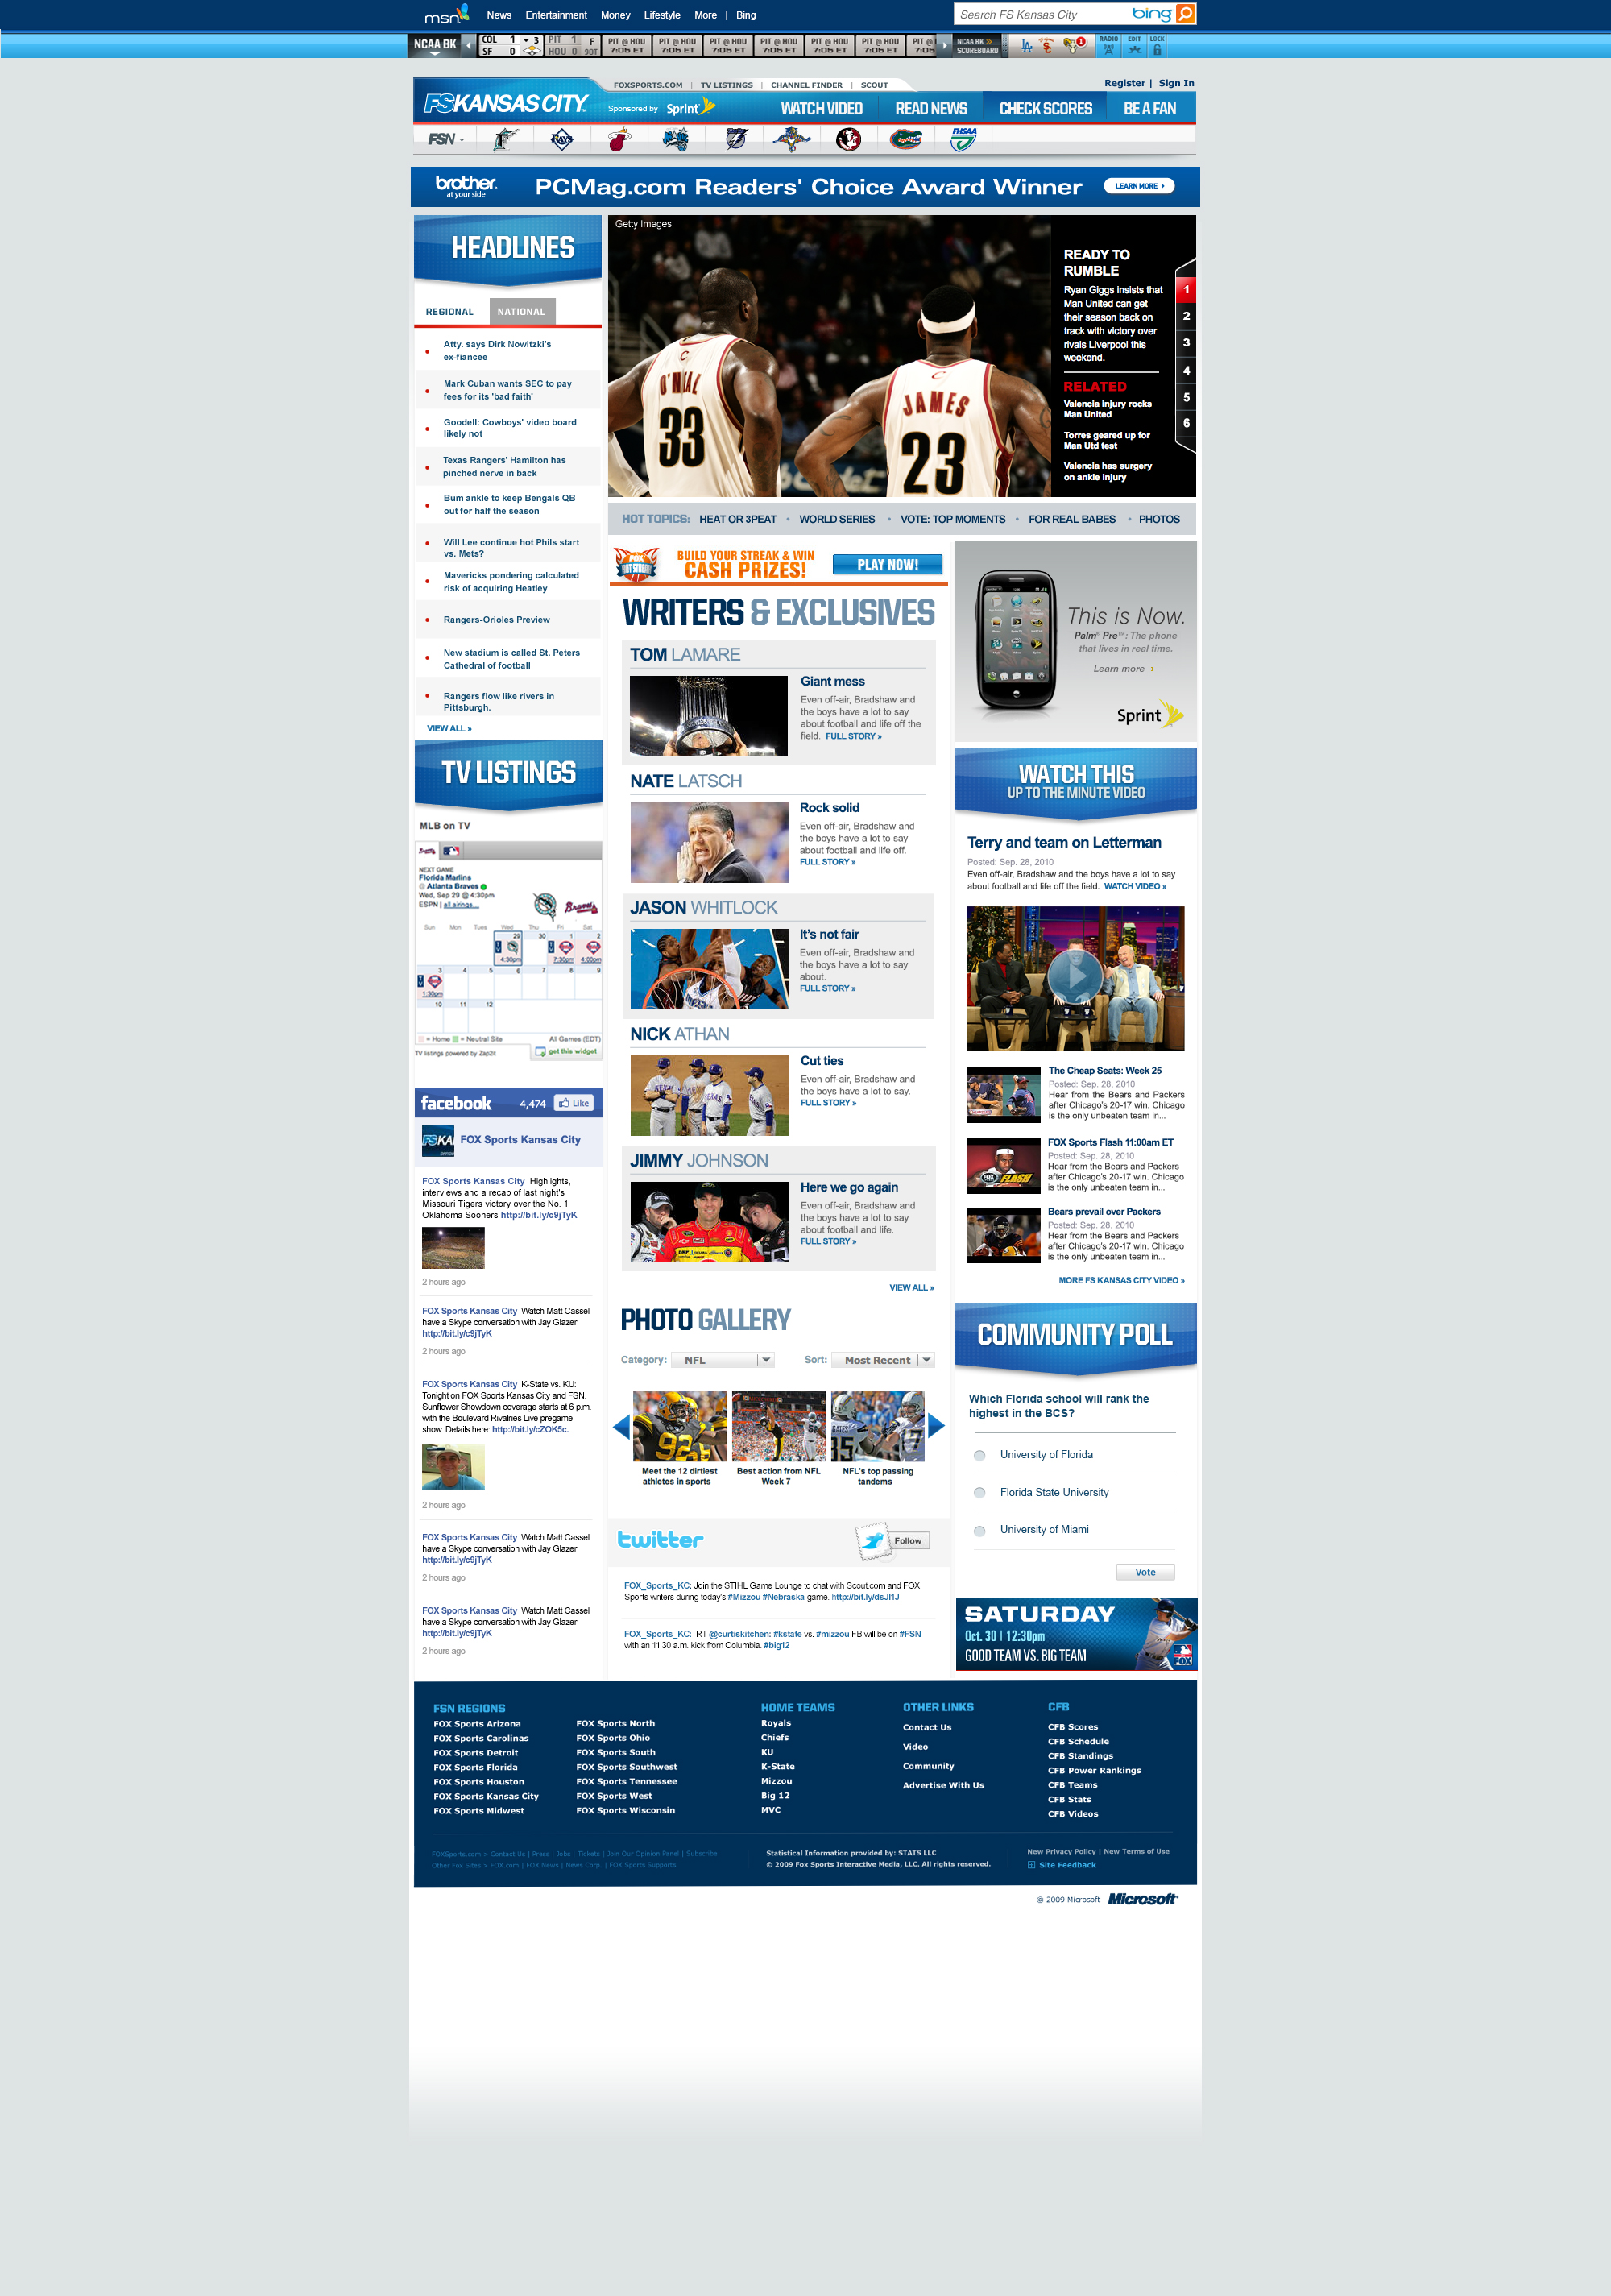 FoxSports-regional-home-page